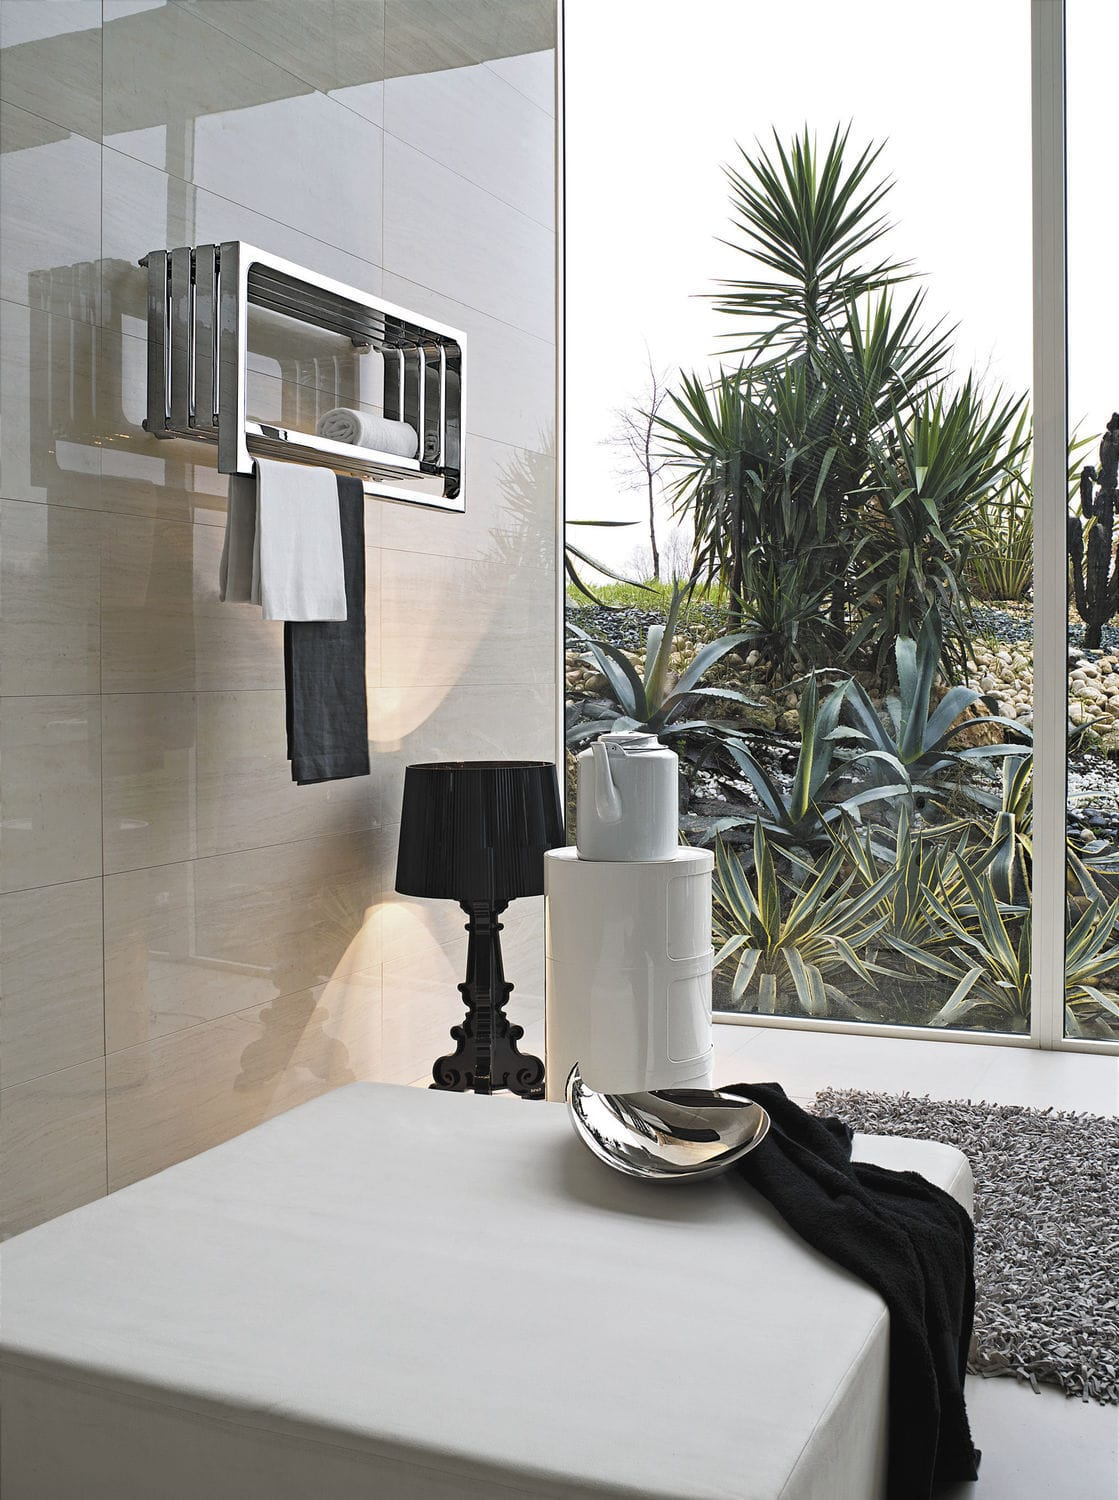 ... Hot water towel radiator / electric / steel / contemporary ELEMENTS:  MONTECARLO by Peter Jamieson ...